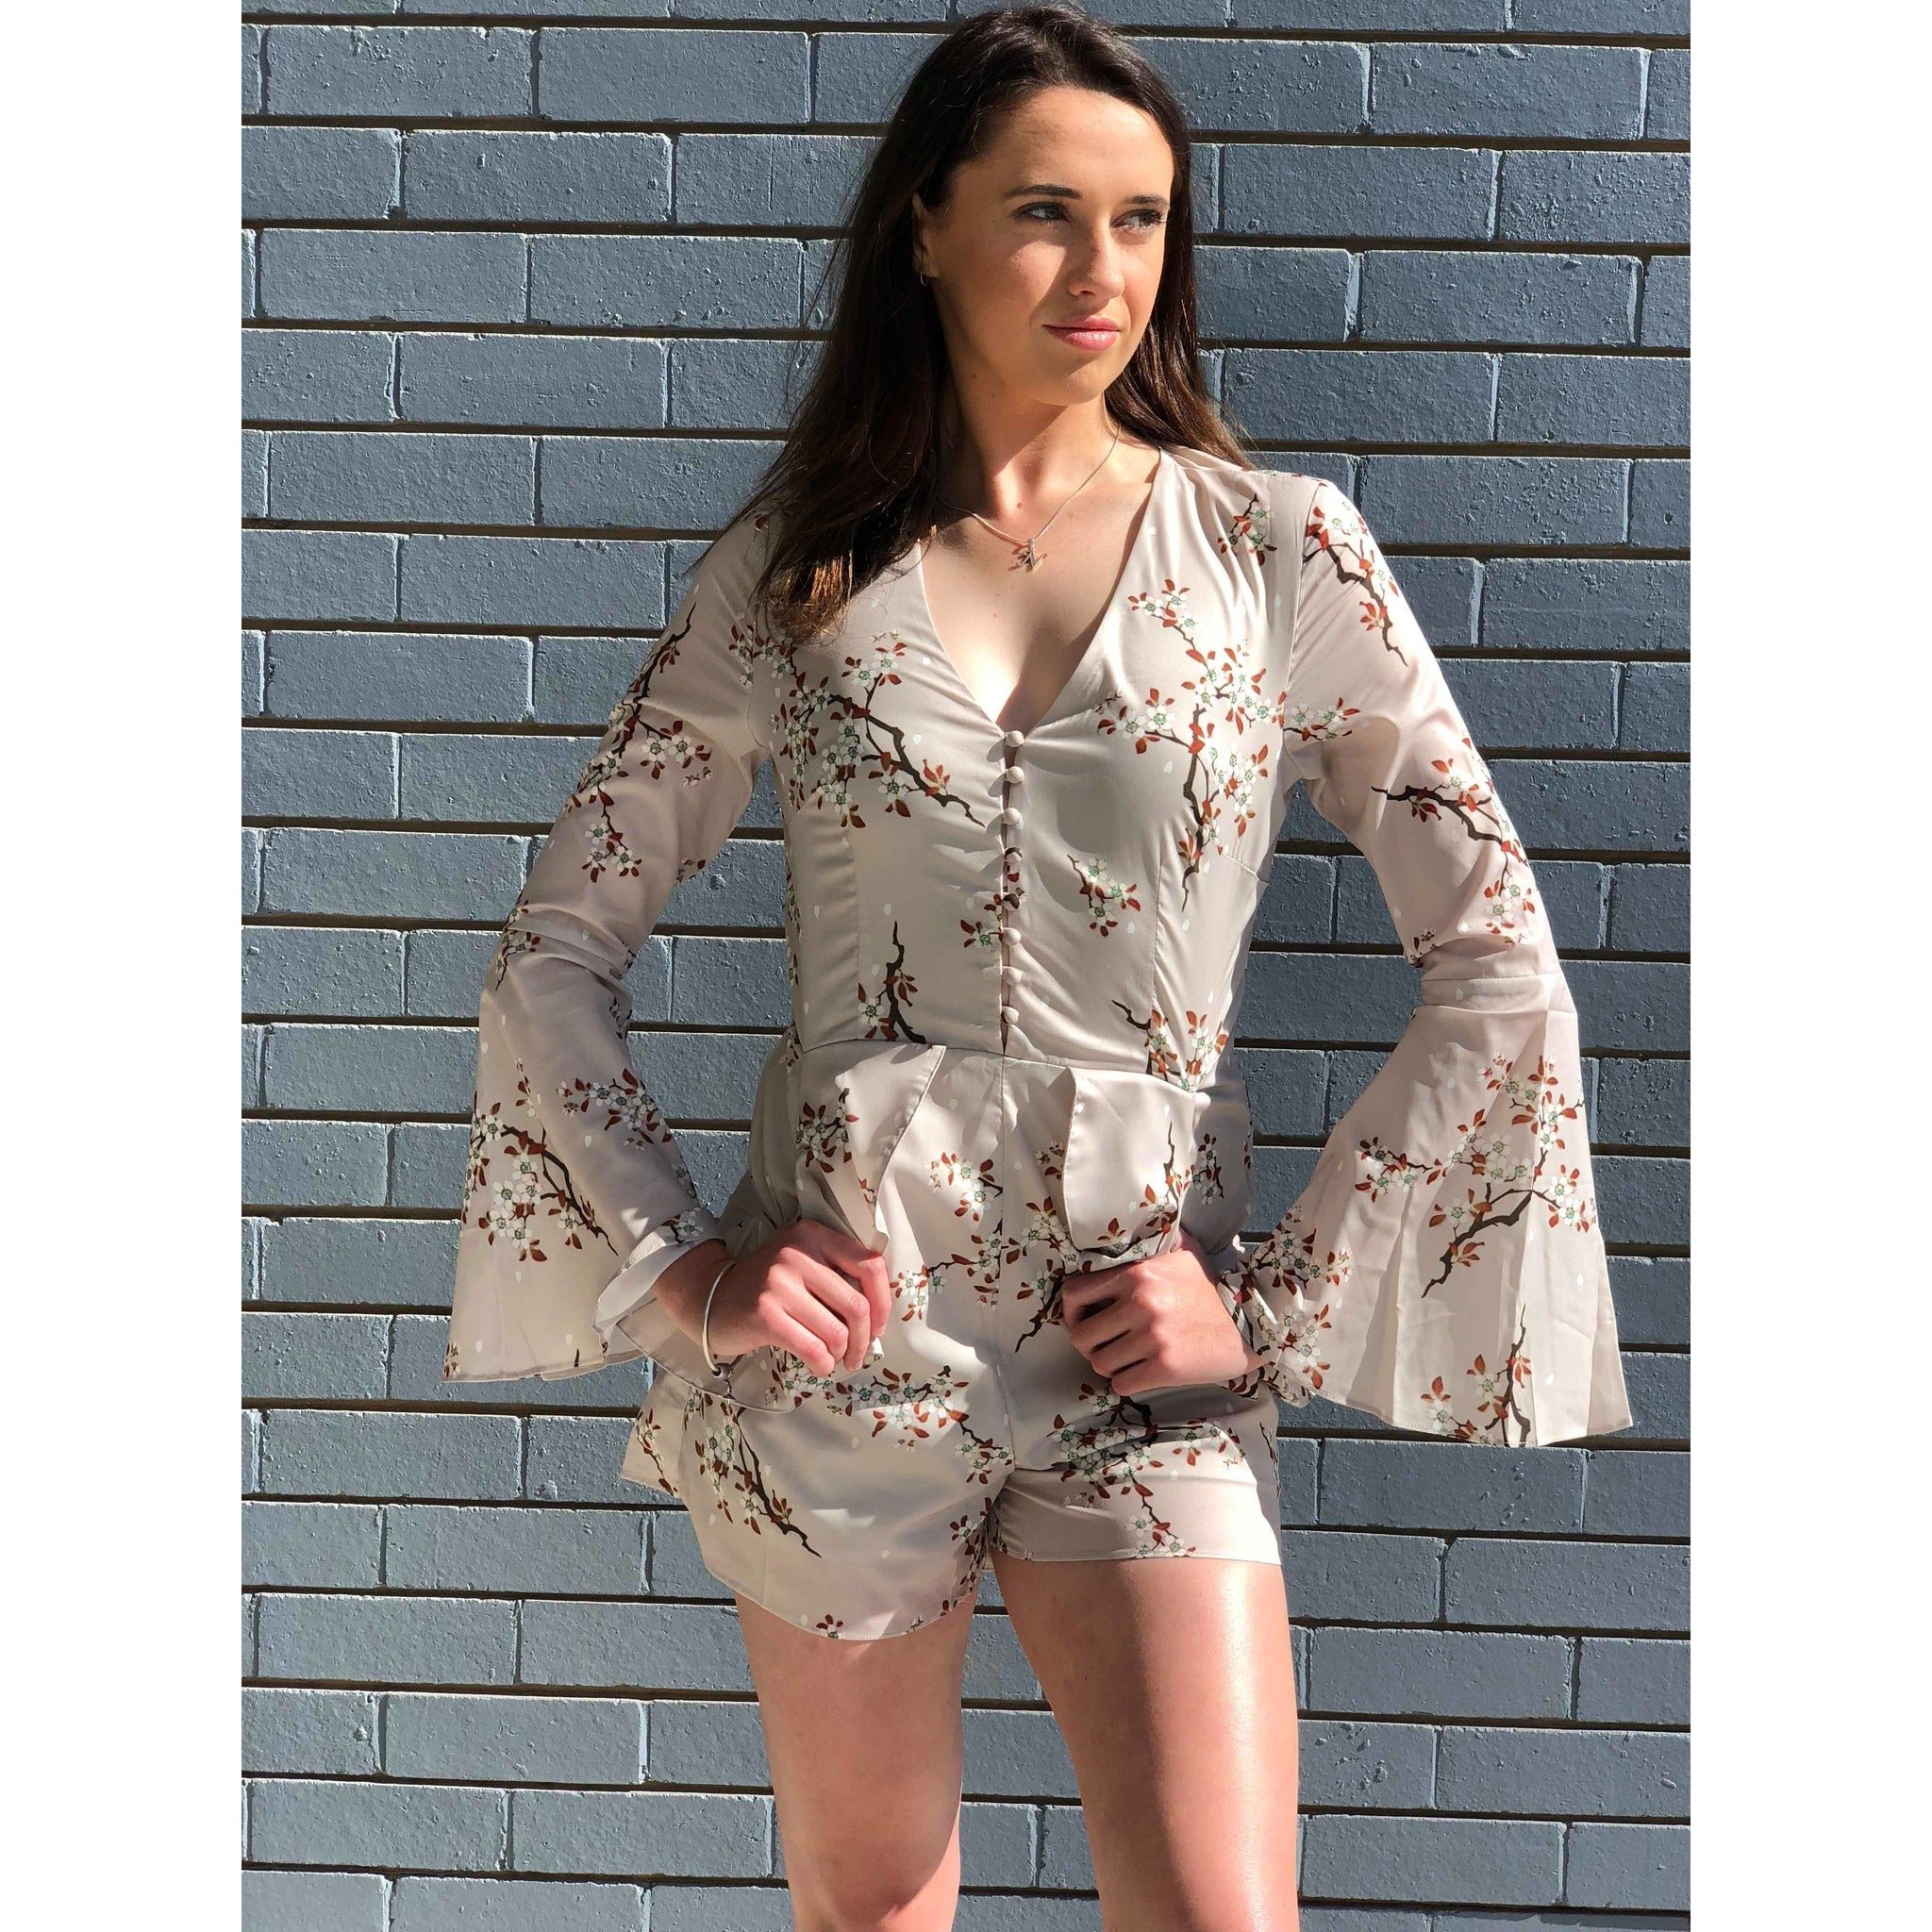 Rosita Long Sleeve Playsuit,you will find it only at madeleine grace the label Store